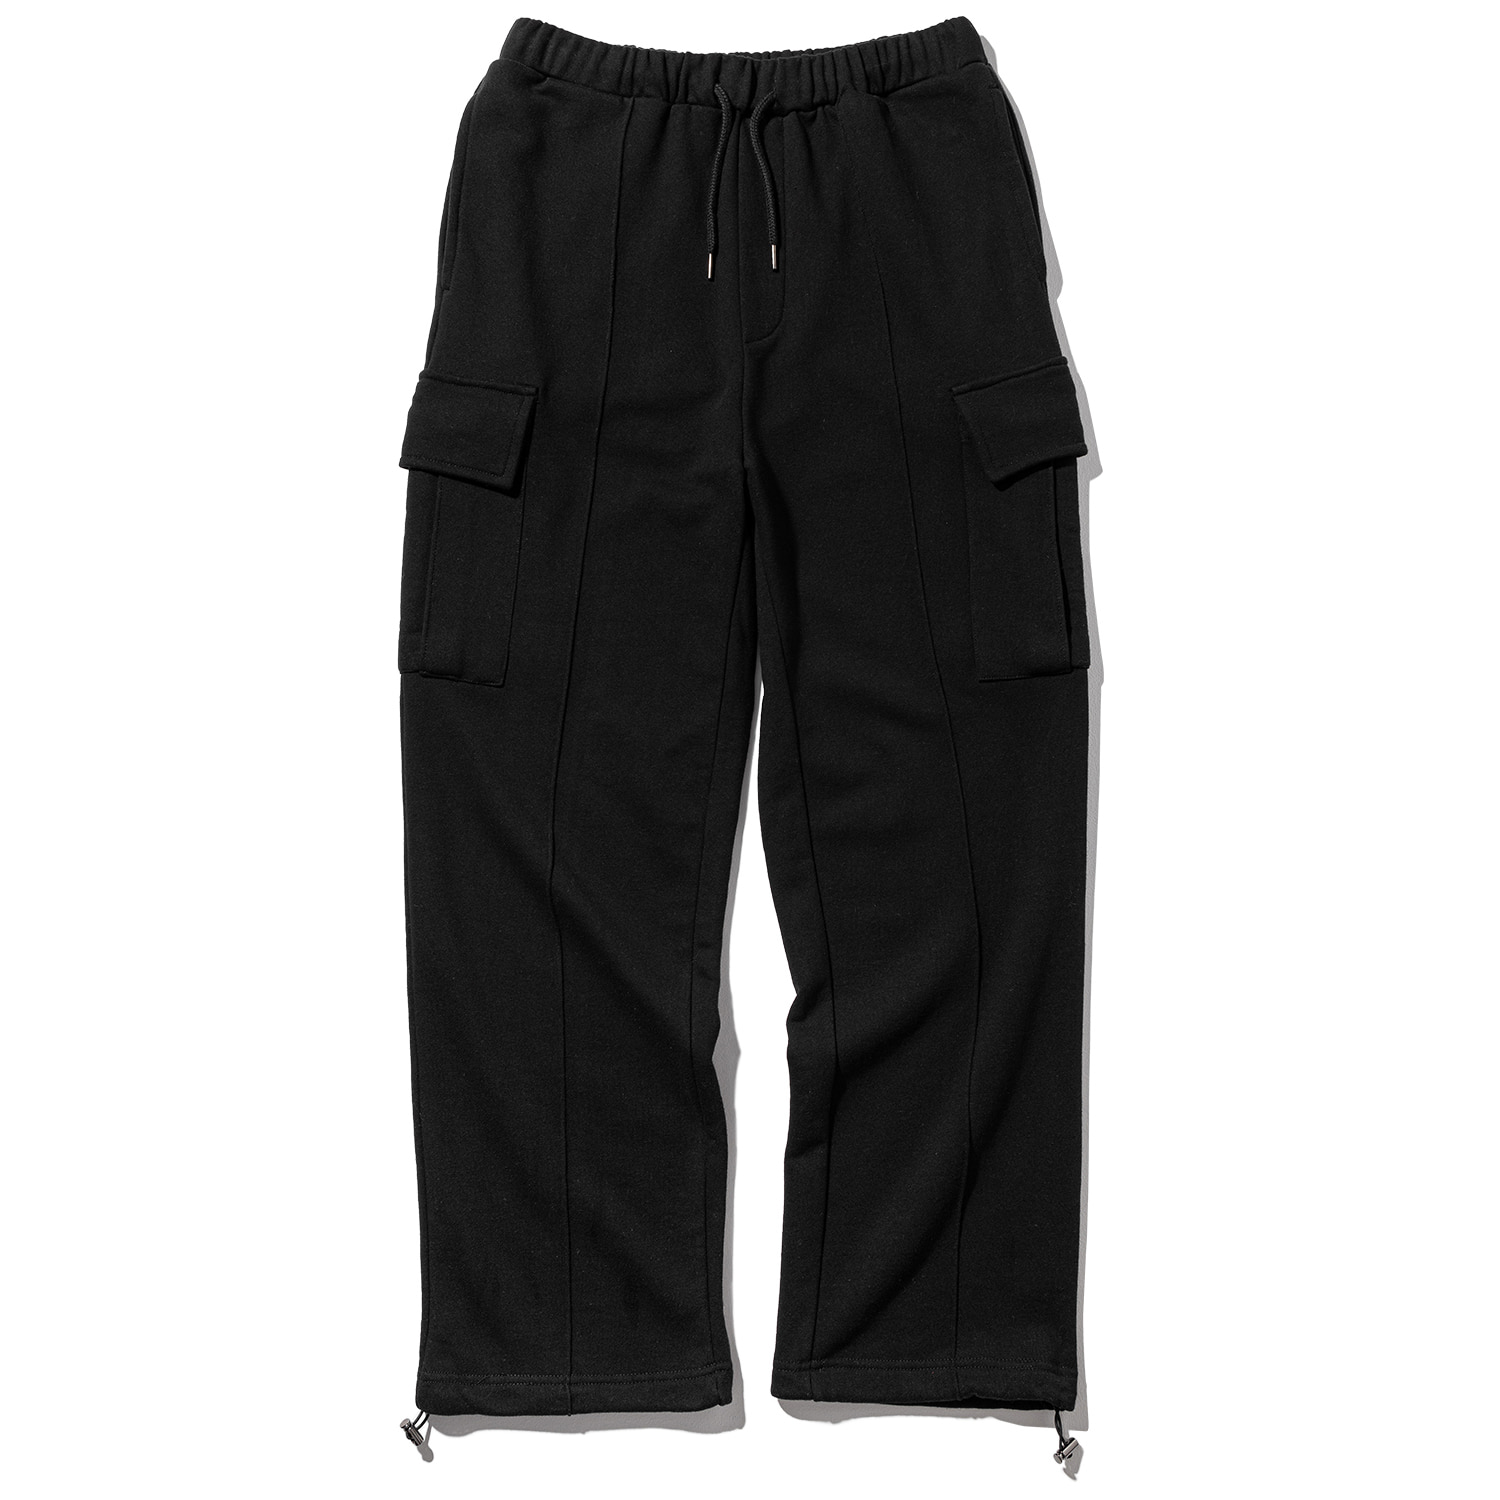 STRING HEAVY TRAINING PANTS MWZTP002-BK